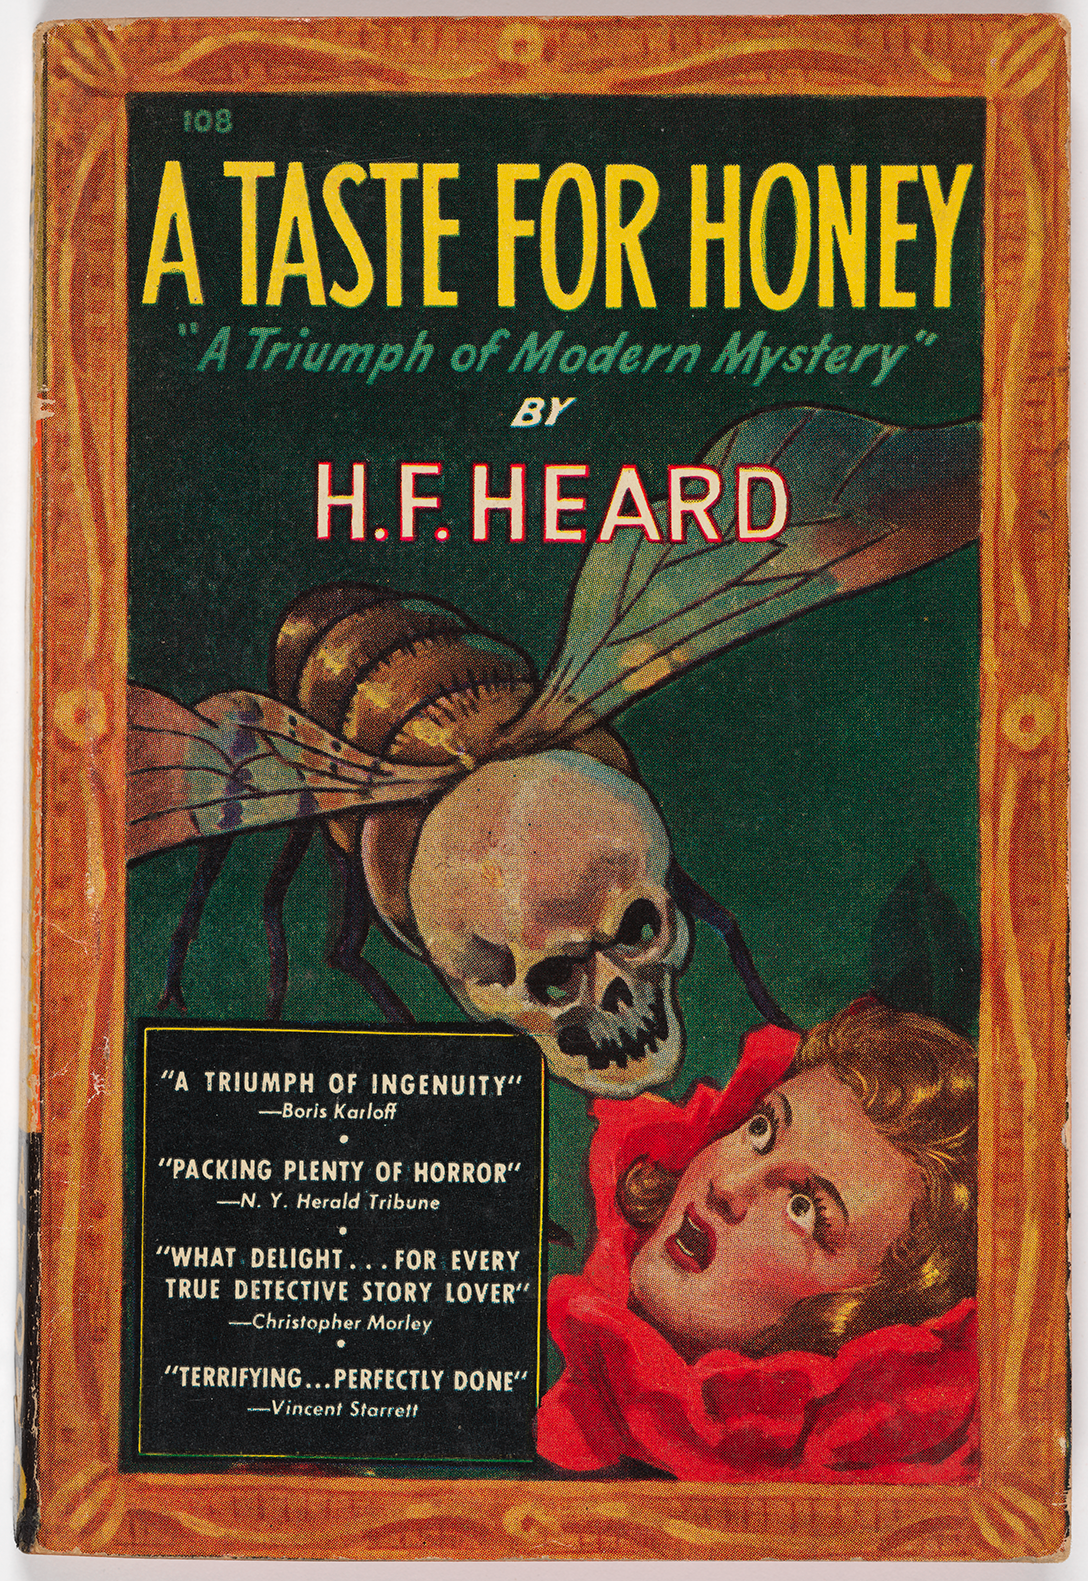 "Hailed as ""a triumph of modern mystery,"" the front cover of this novel by H.F. Heard shows a terrified blonde woman wearing a red scarf around her neck and cowering in fear. Centered on the page is a huge fly with a skull's head — which is preparing to attack the woman. Reviews describe the novel as ""packing plenty of horror"" and ""terrifying … perfectly done."""